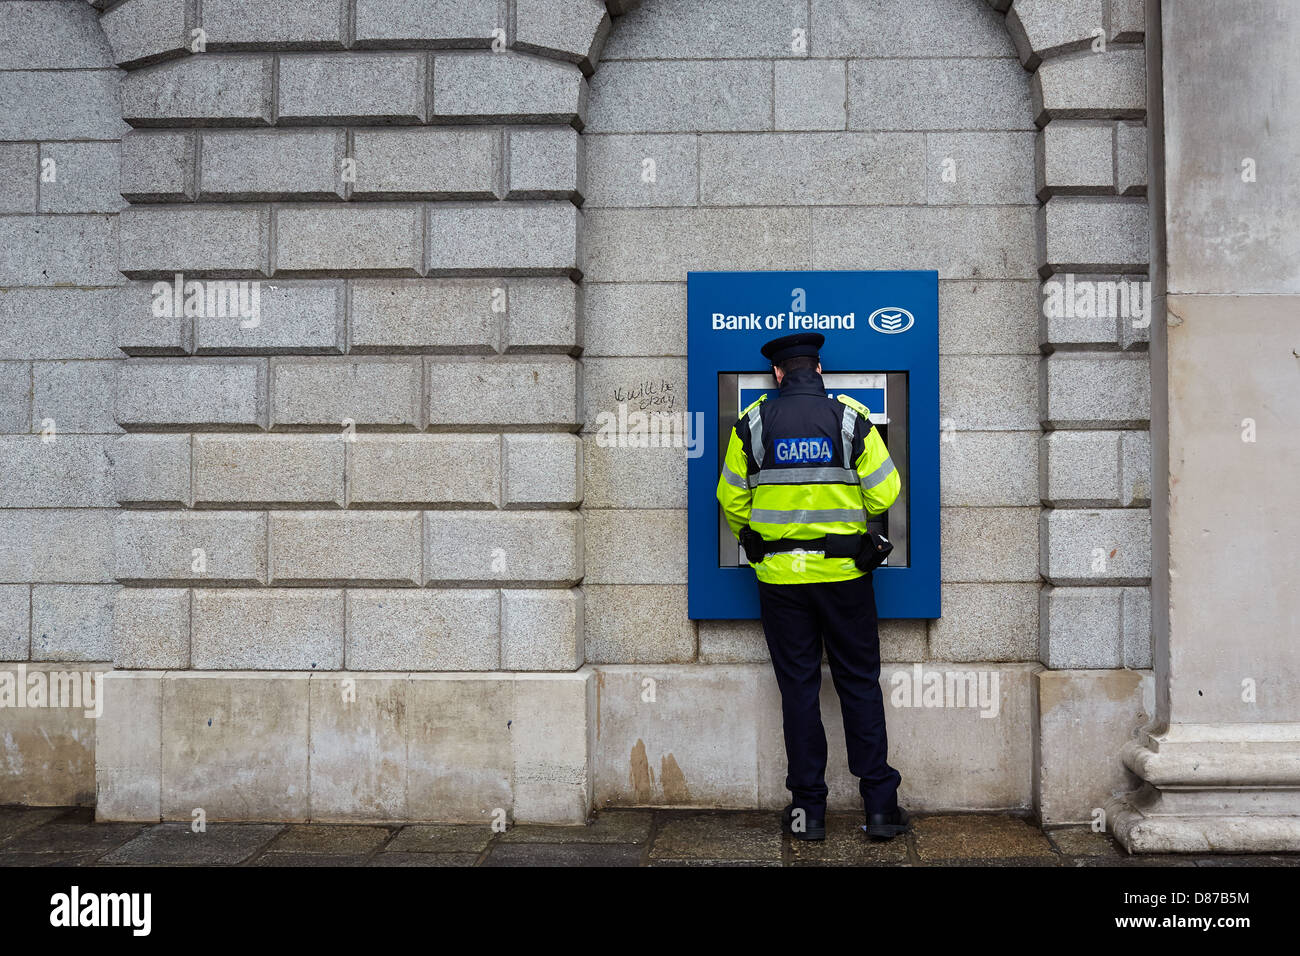 Member of the Garda (Irish police force) using an ATM at the bank of Ireland  during a recession. College Green, - Stock Image